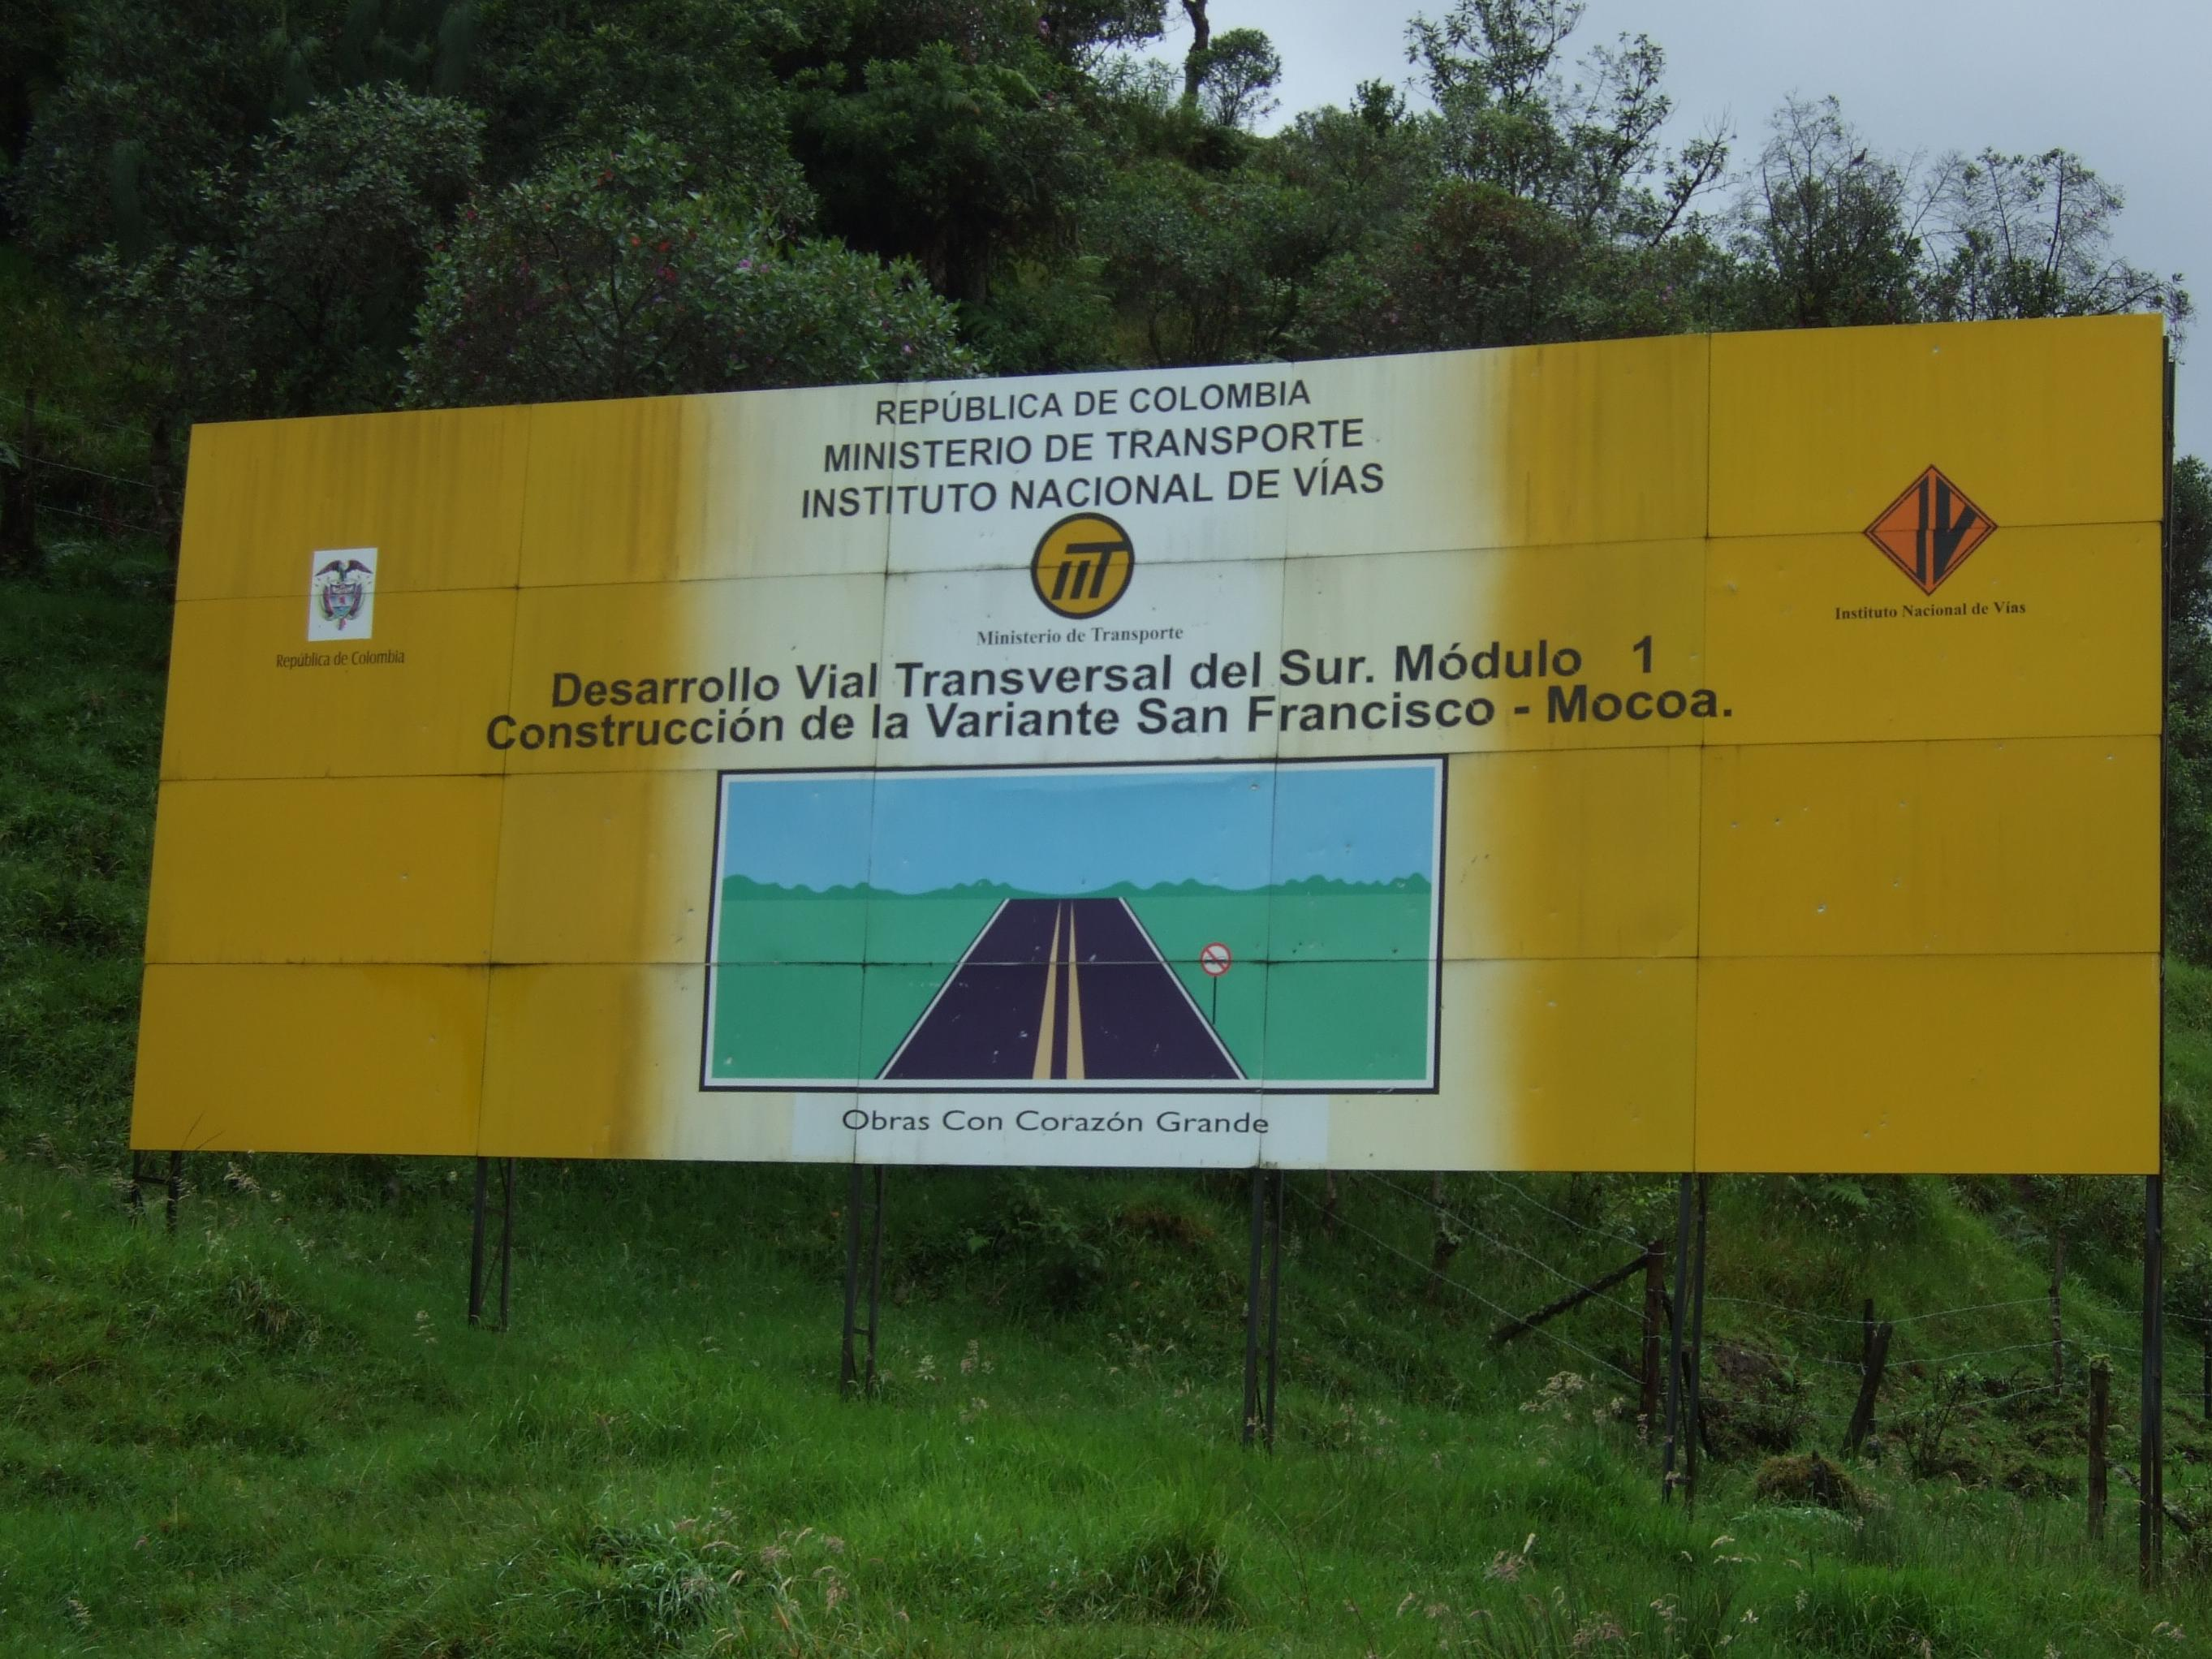 A sign announces the construction project